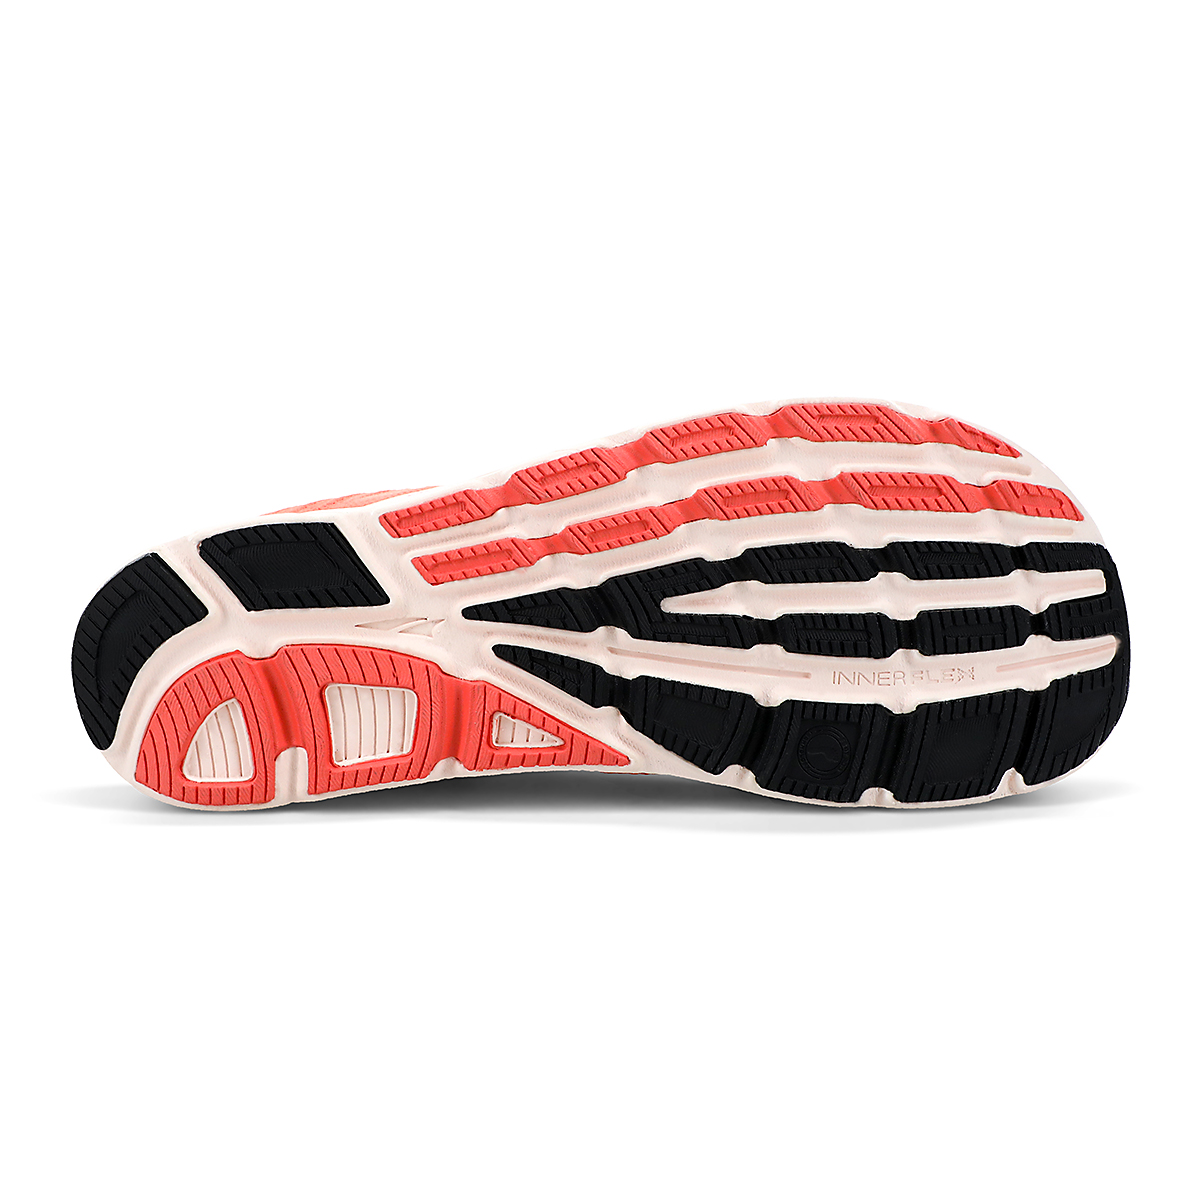 Women's Altra Torin 4.5 Plush Running Shoe - Color: Coral - Size: 5.5 - Width: Regular, Coral, large, image 4